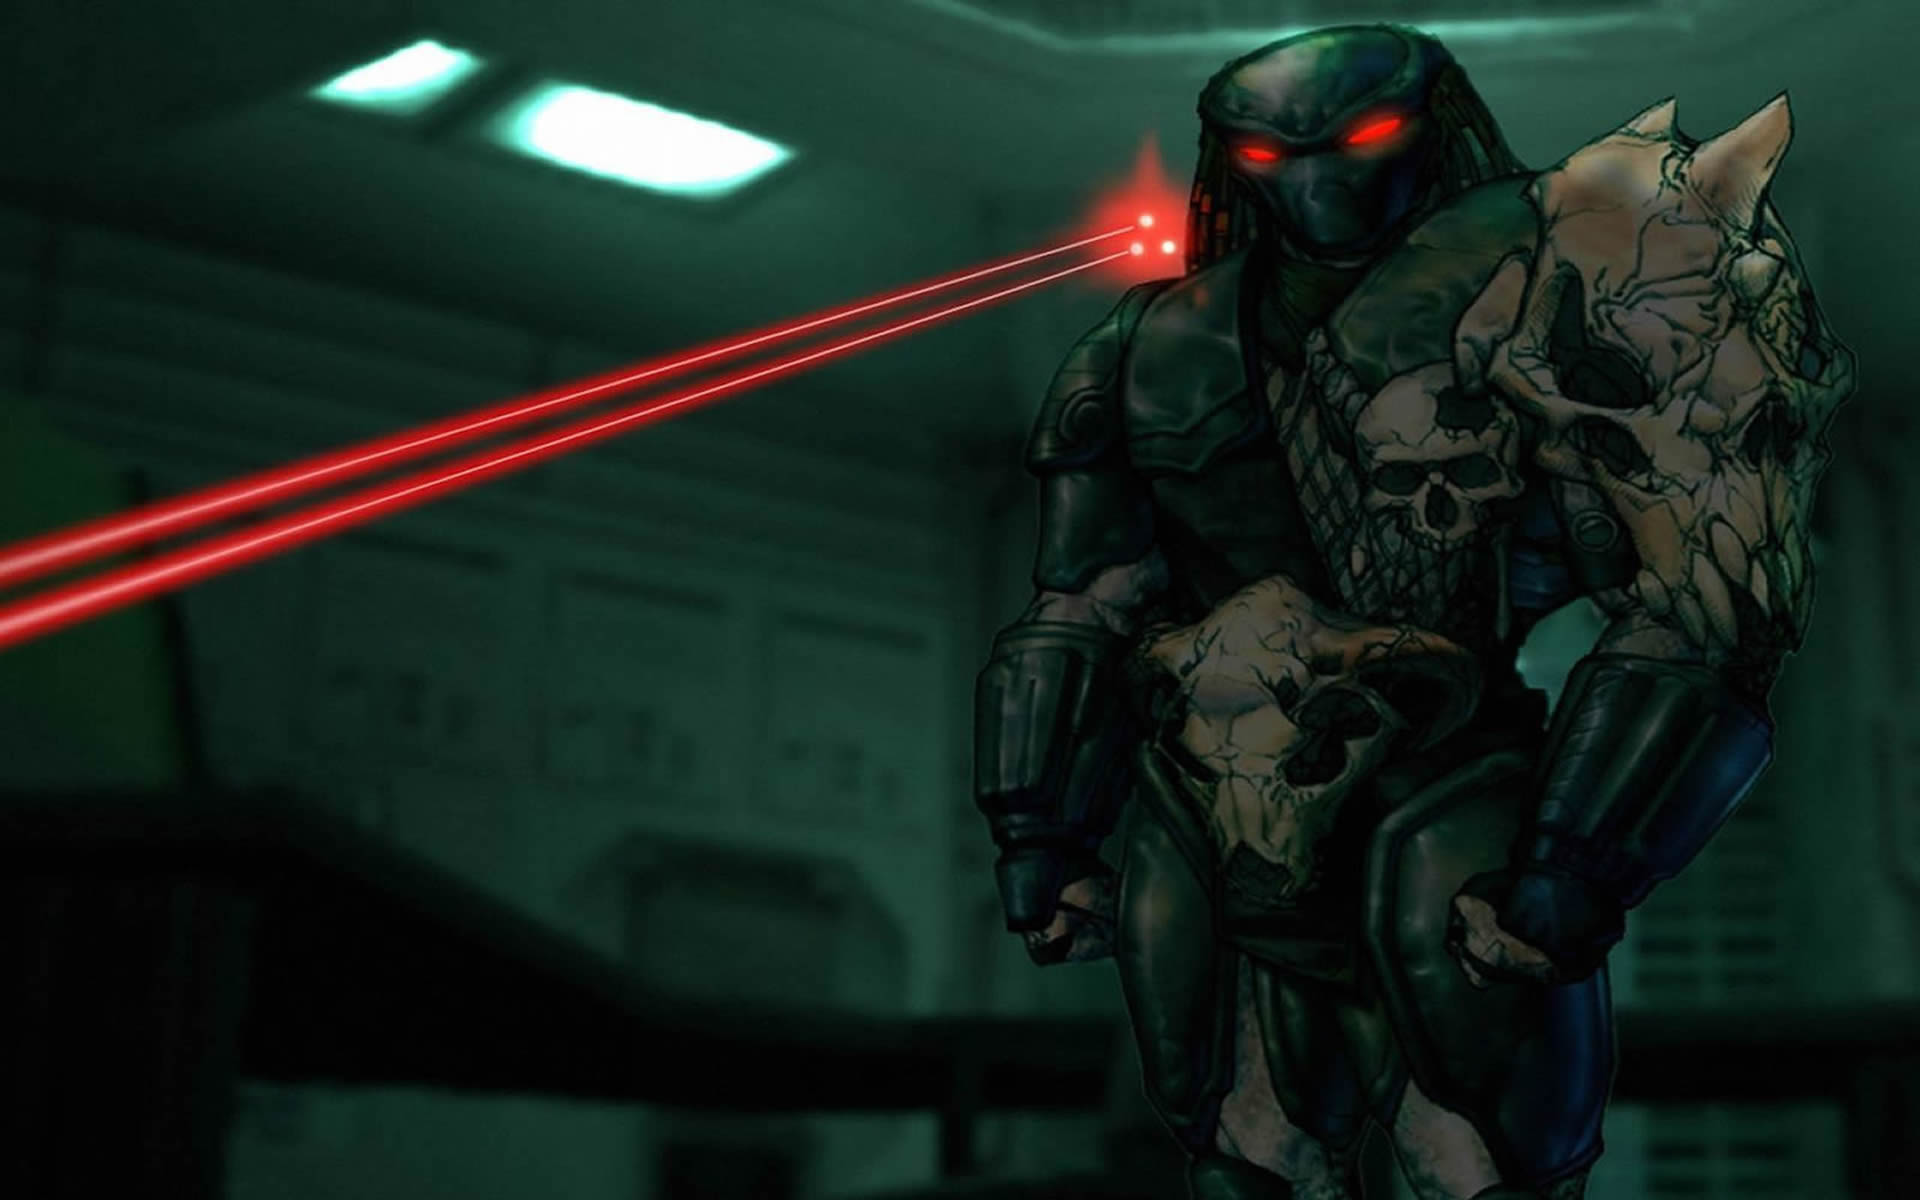 predator lazer concentrated on Wallpaper Background thumbnail